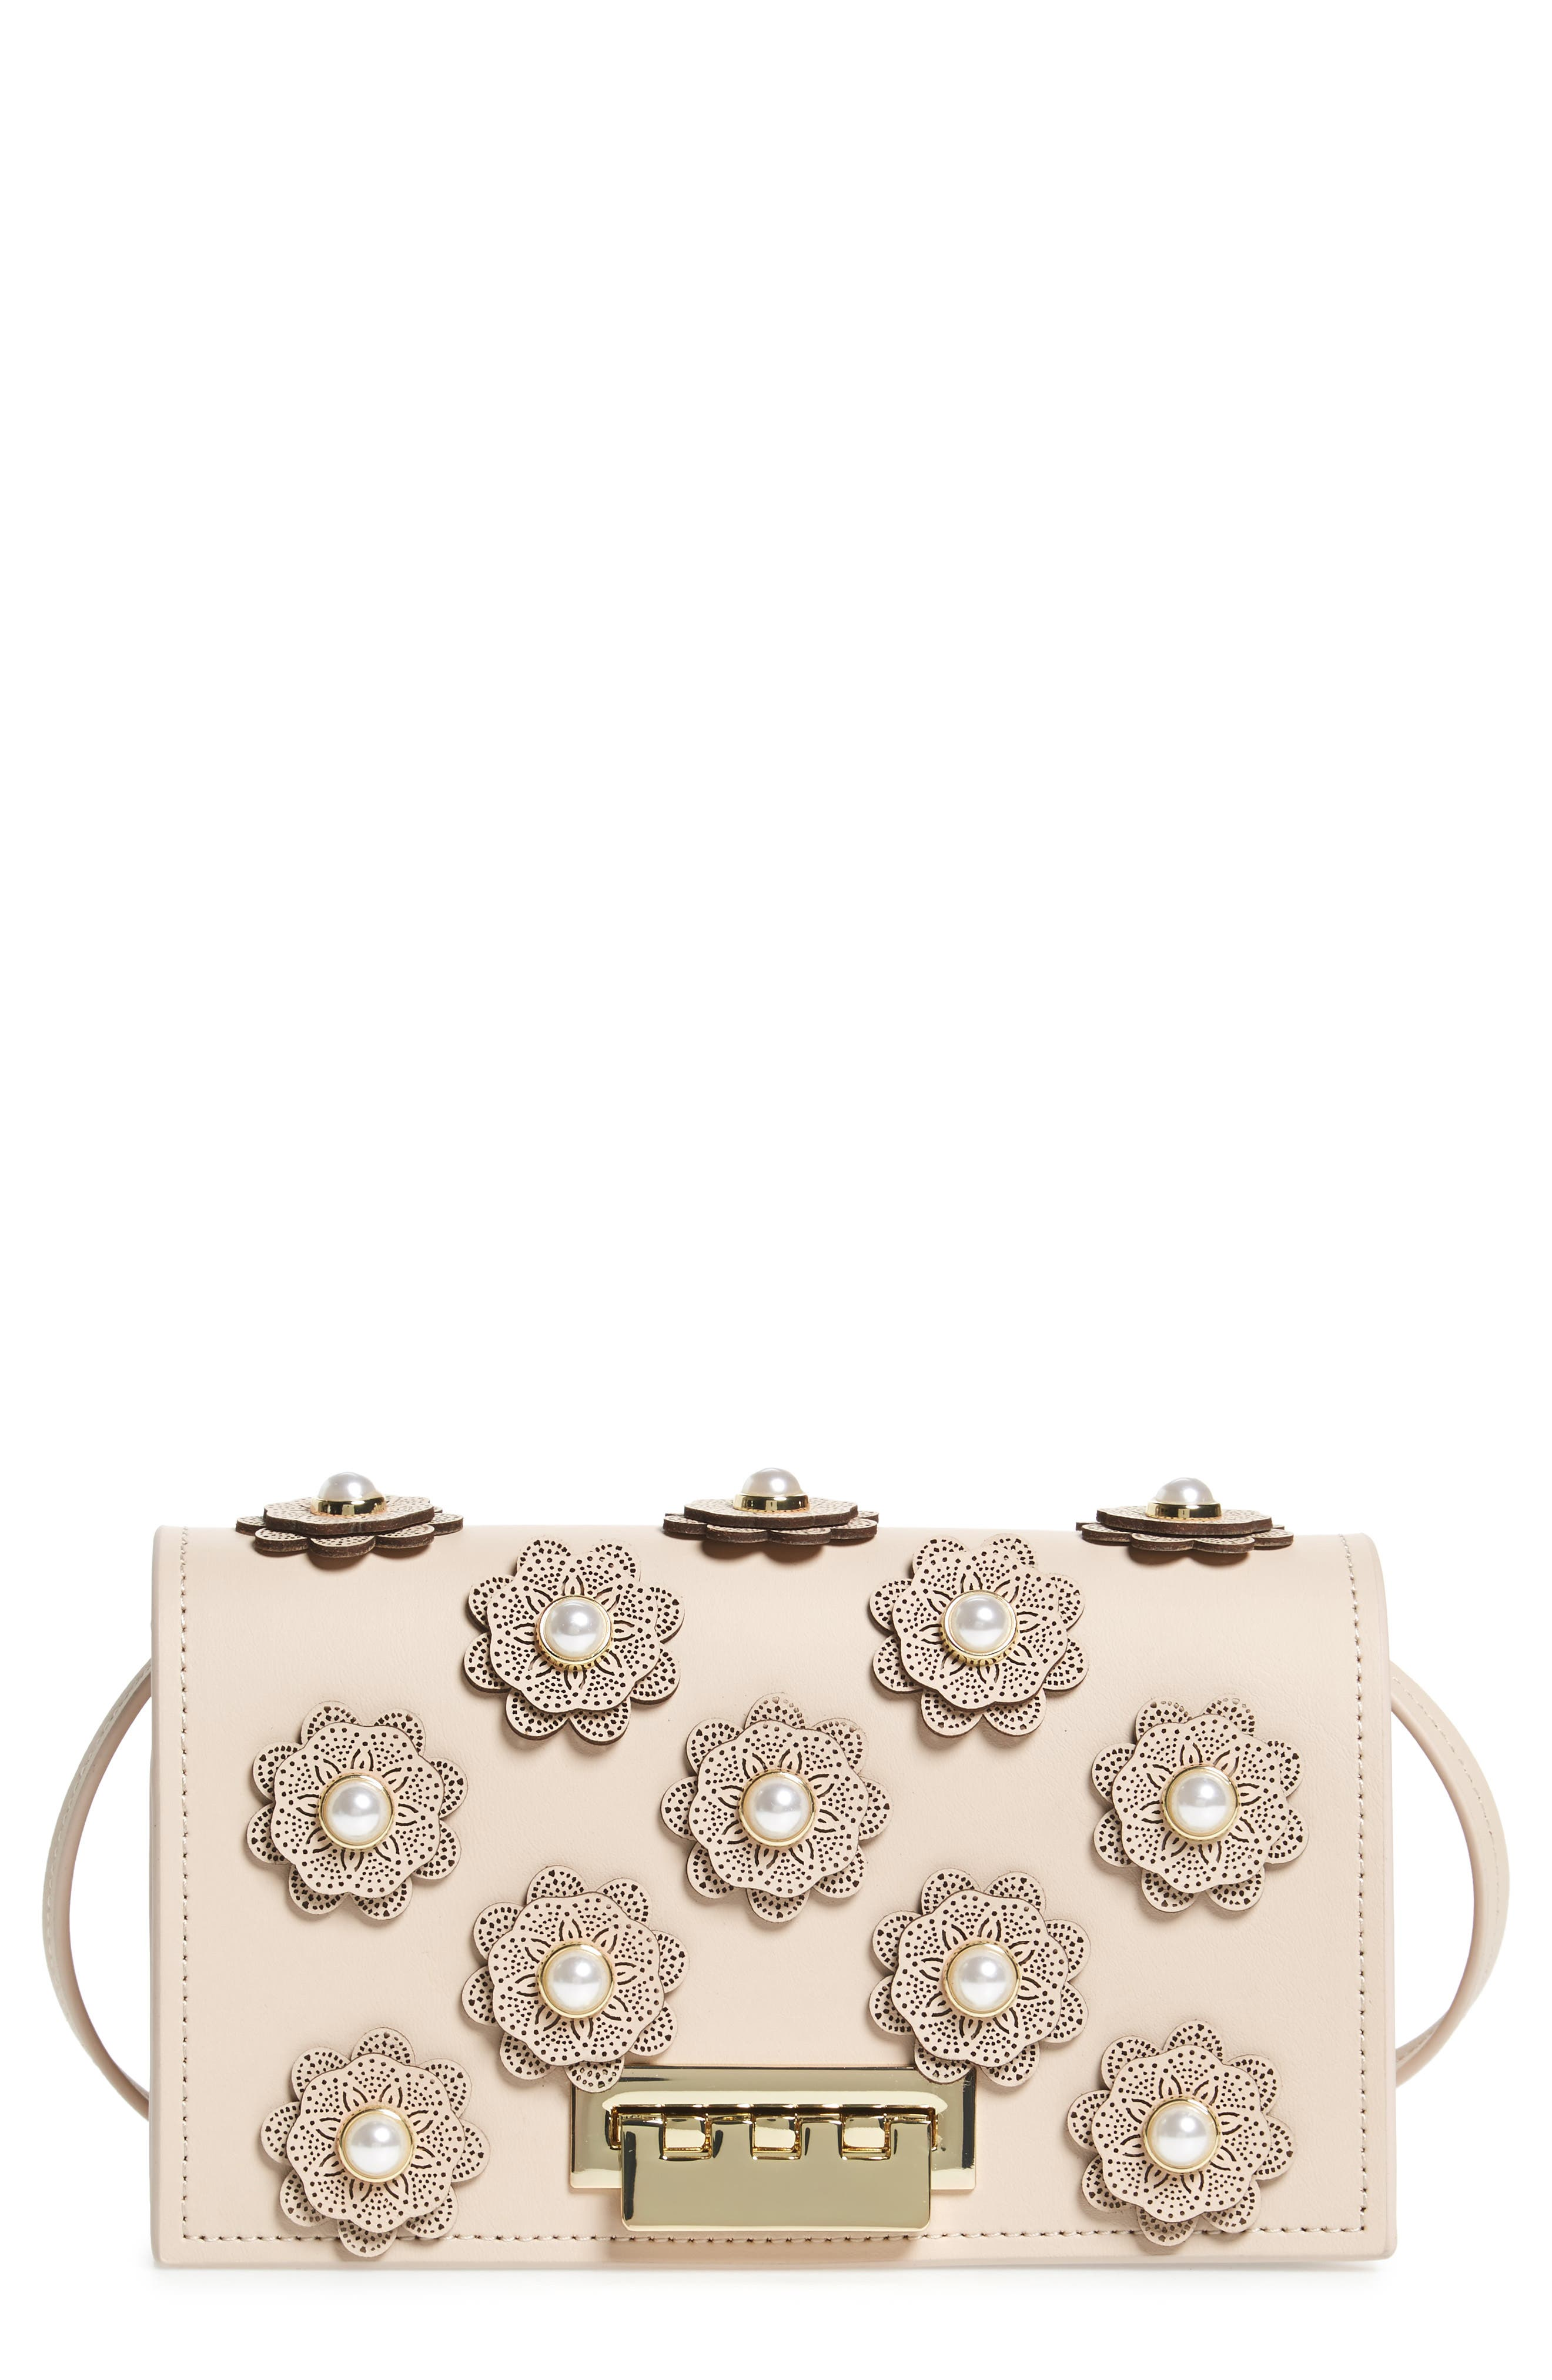 Alternate Image 1 Selected - ZAC Zac Posen Earthette Leather Crossbody Bag